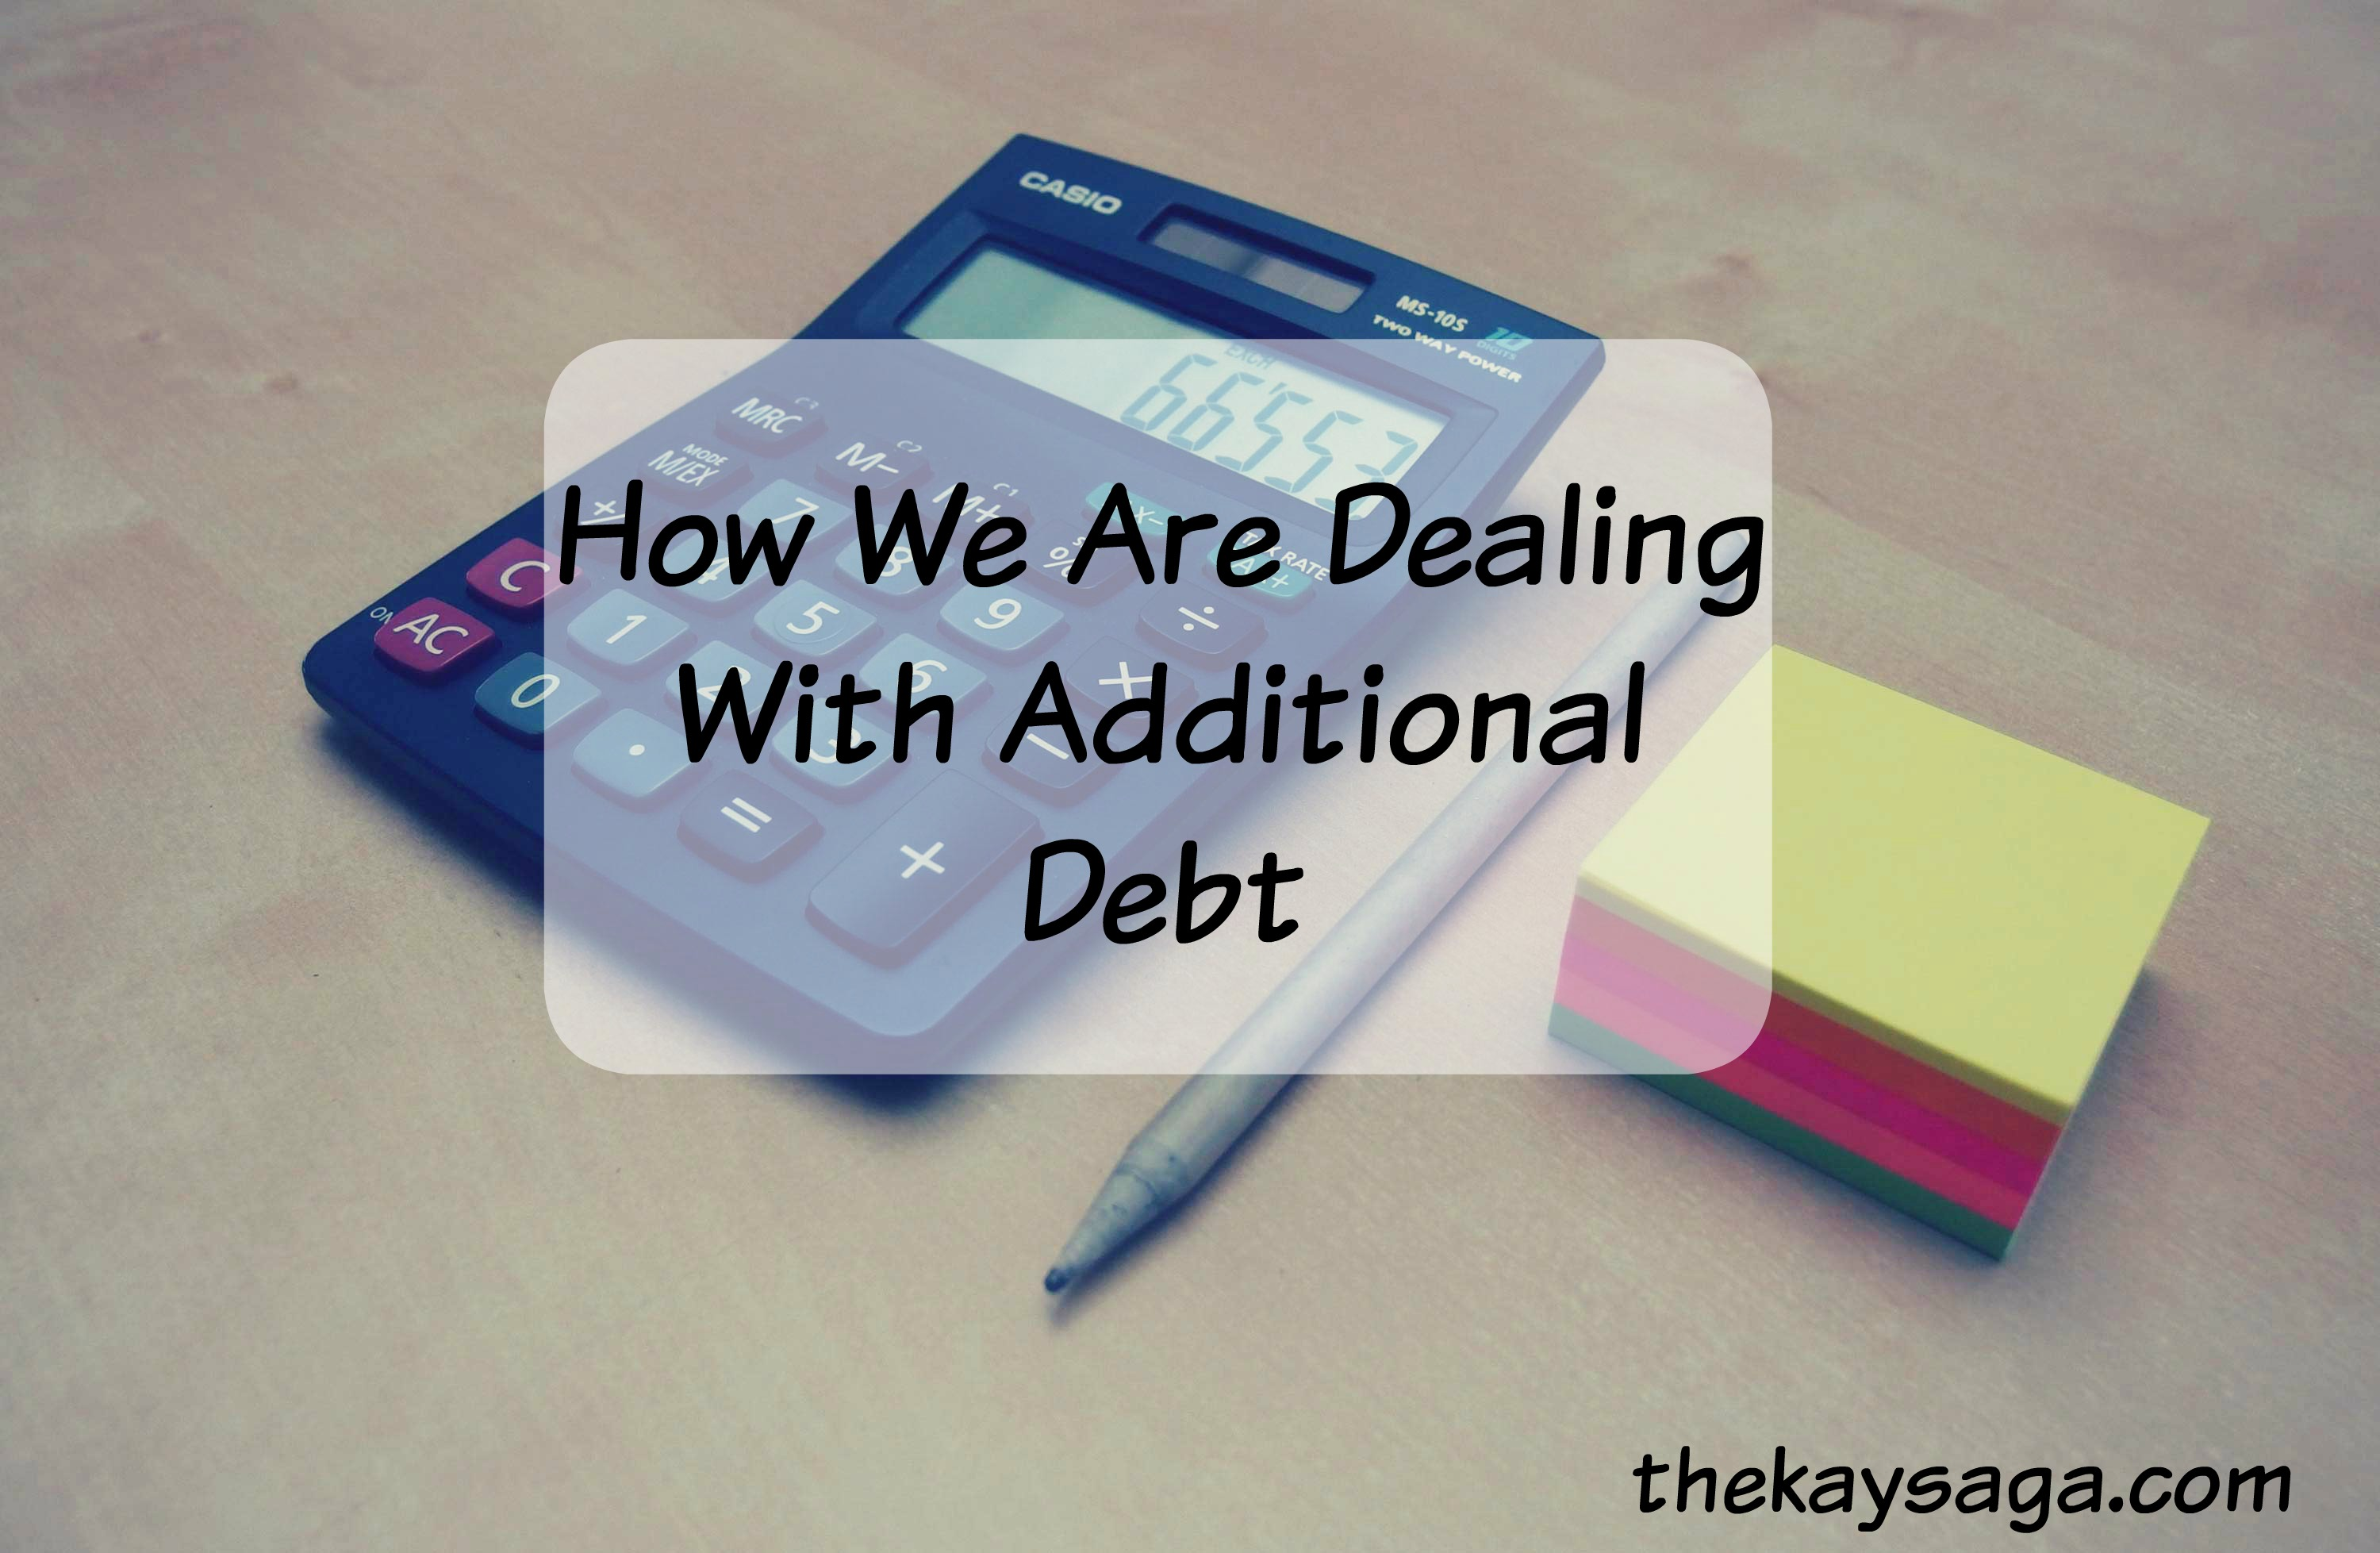 How We Are Dealing With Additional Debt